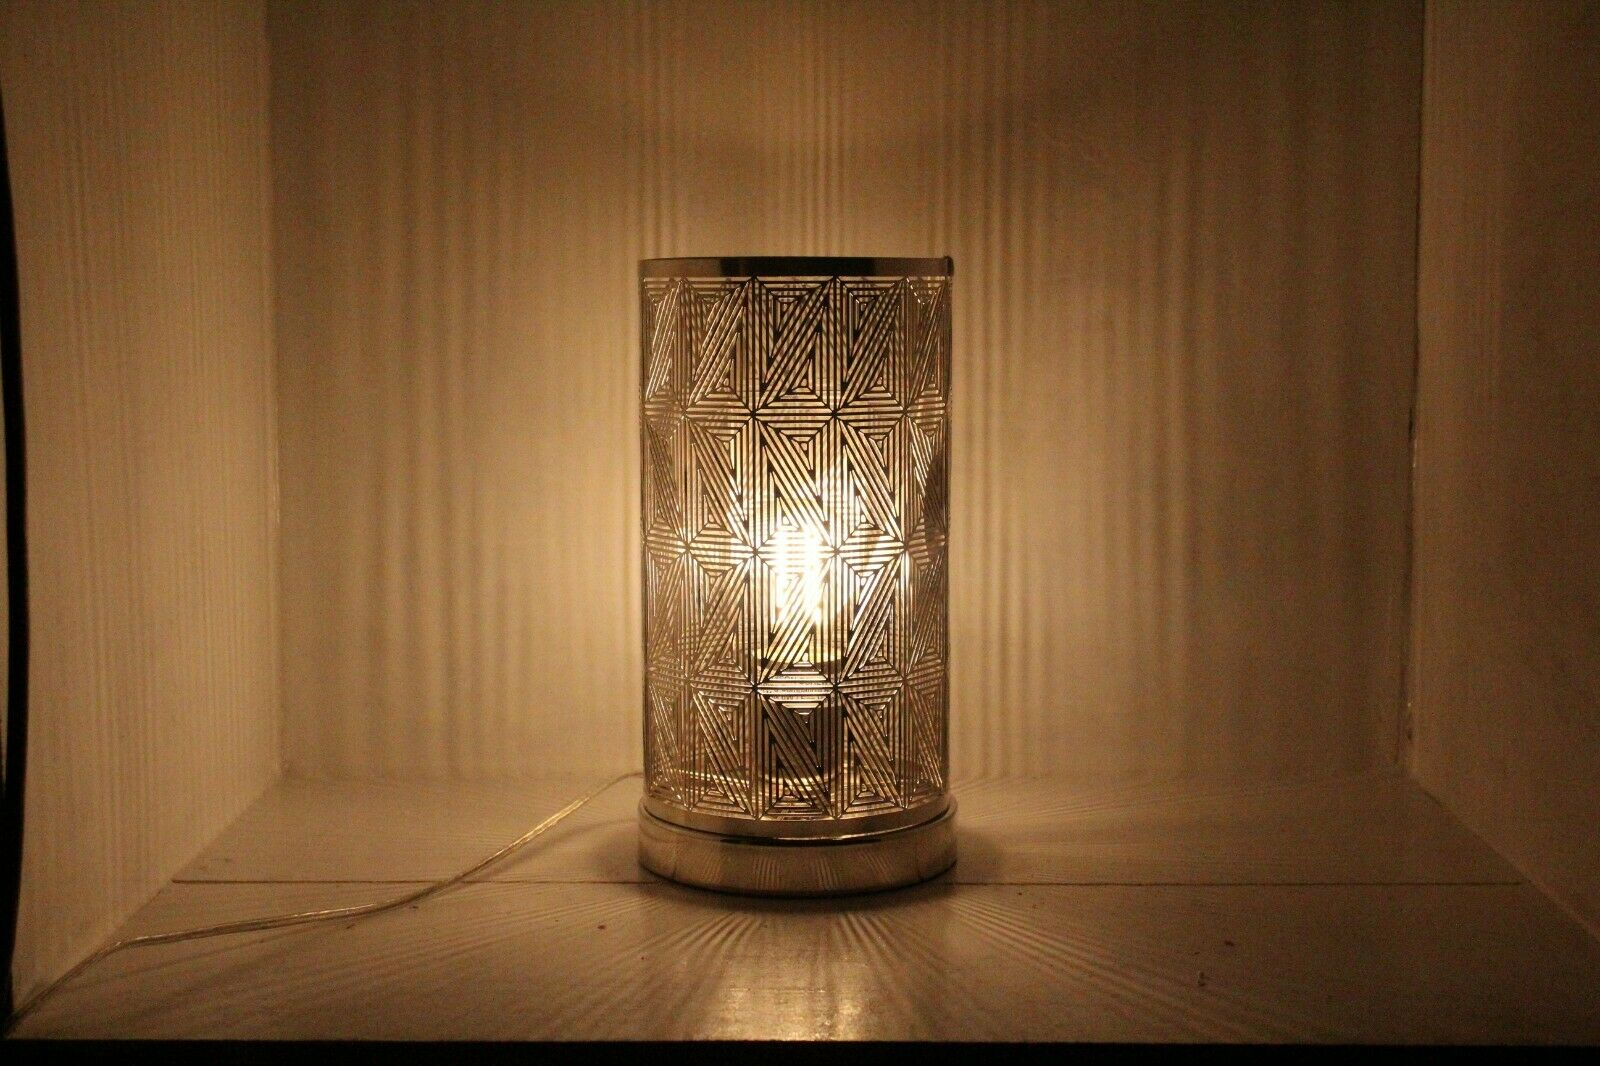 Stunning Table Lamp Geometric Style lantern Touch Lamp adds Flair to any Room